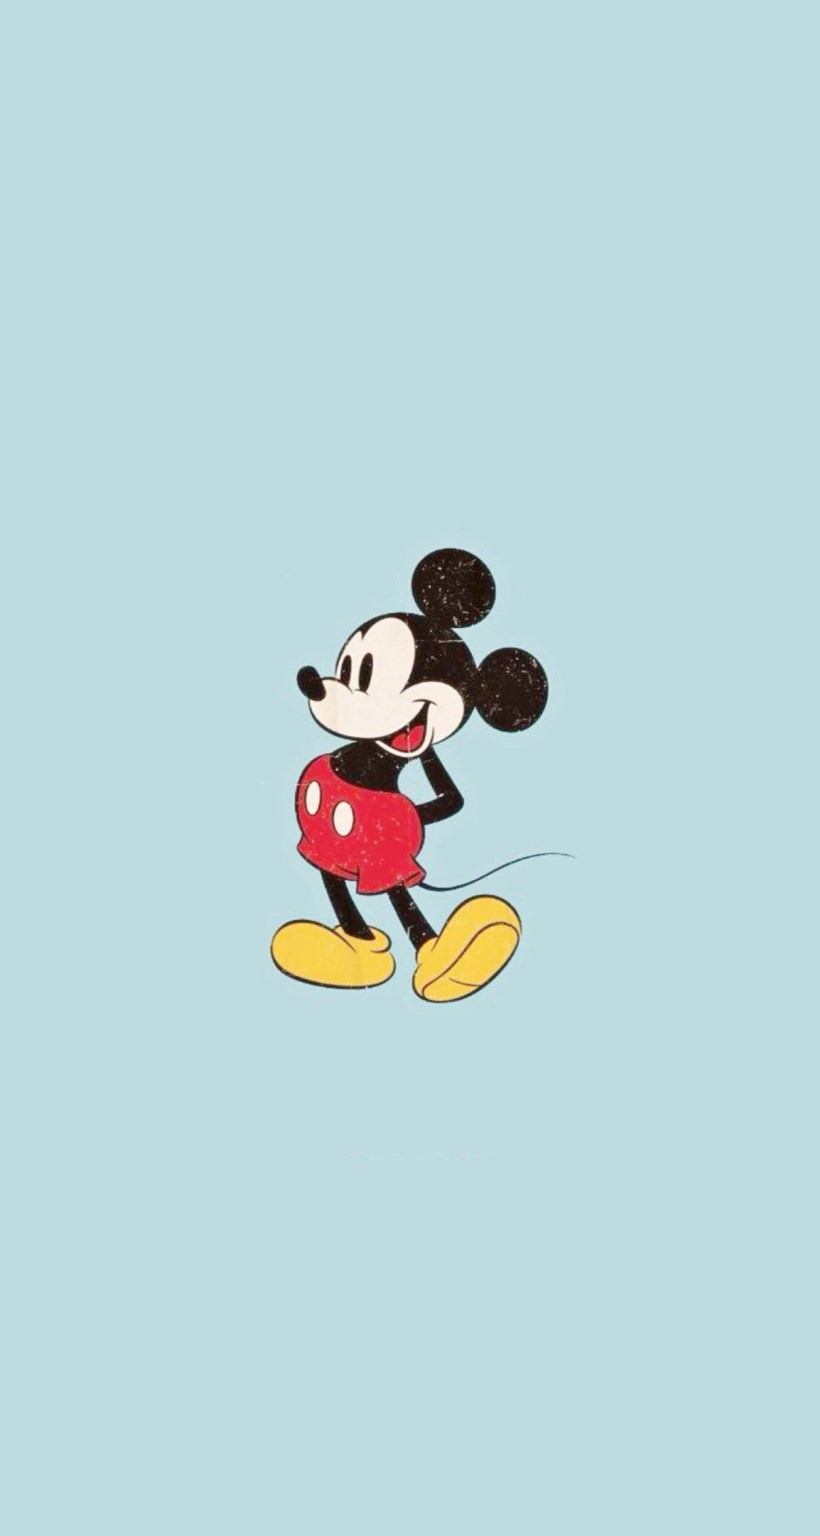 Wallpaper iphone mickey mouse - Cute Mickey Mouse Iphone Wallpaper 71 Images